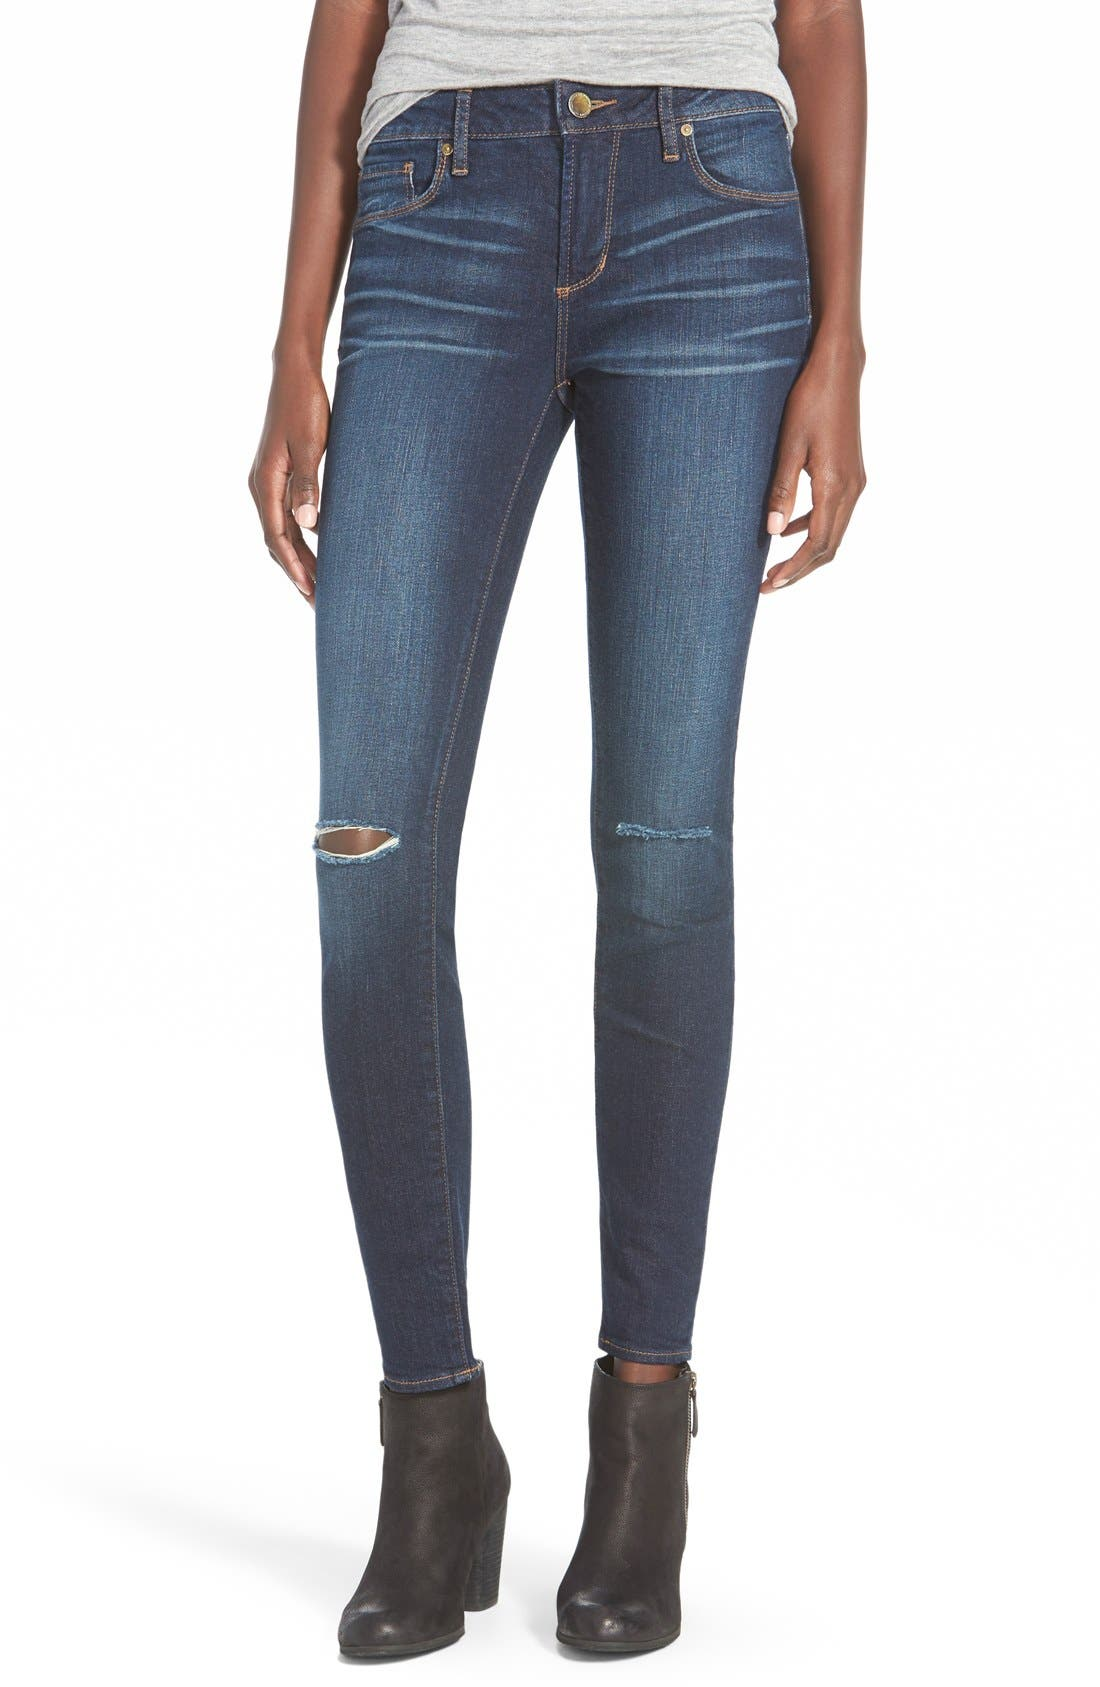 Main Image - Articles of Society Red Label 'Soho' Distressed Skinny Jeans (Pure)